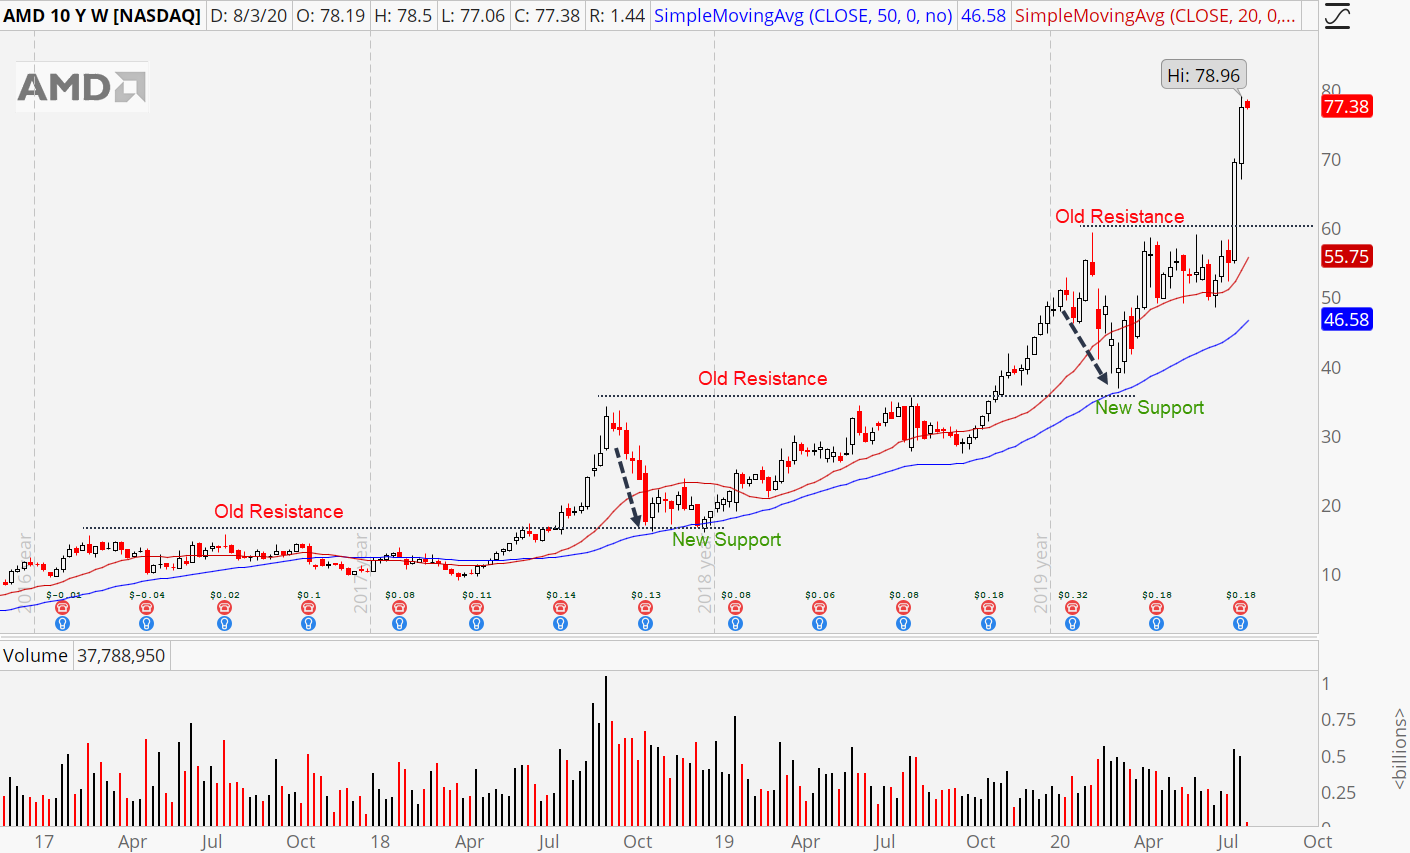 Advanced Micro Devices (AMD) weekly stock chart showing overbought